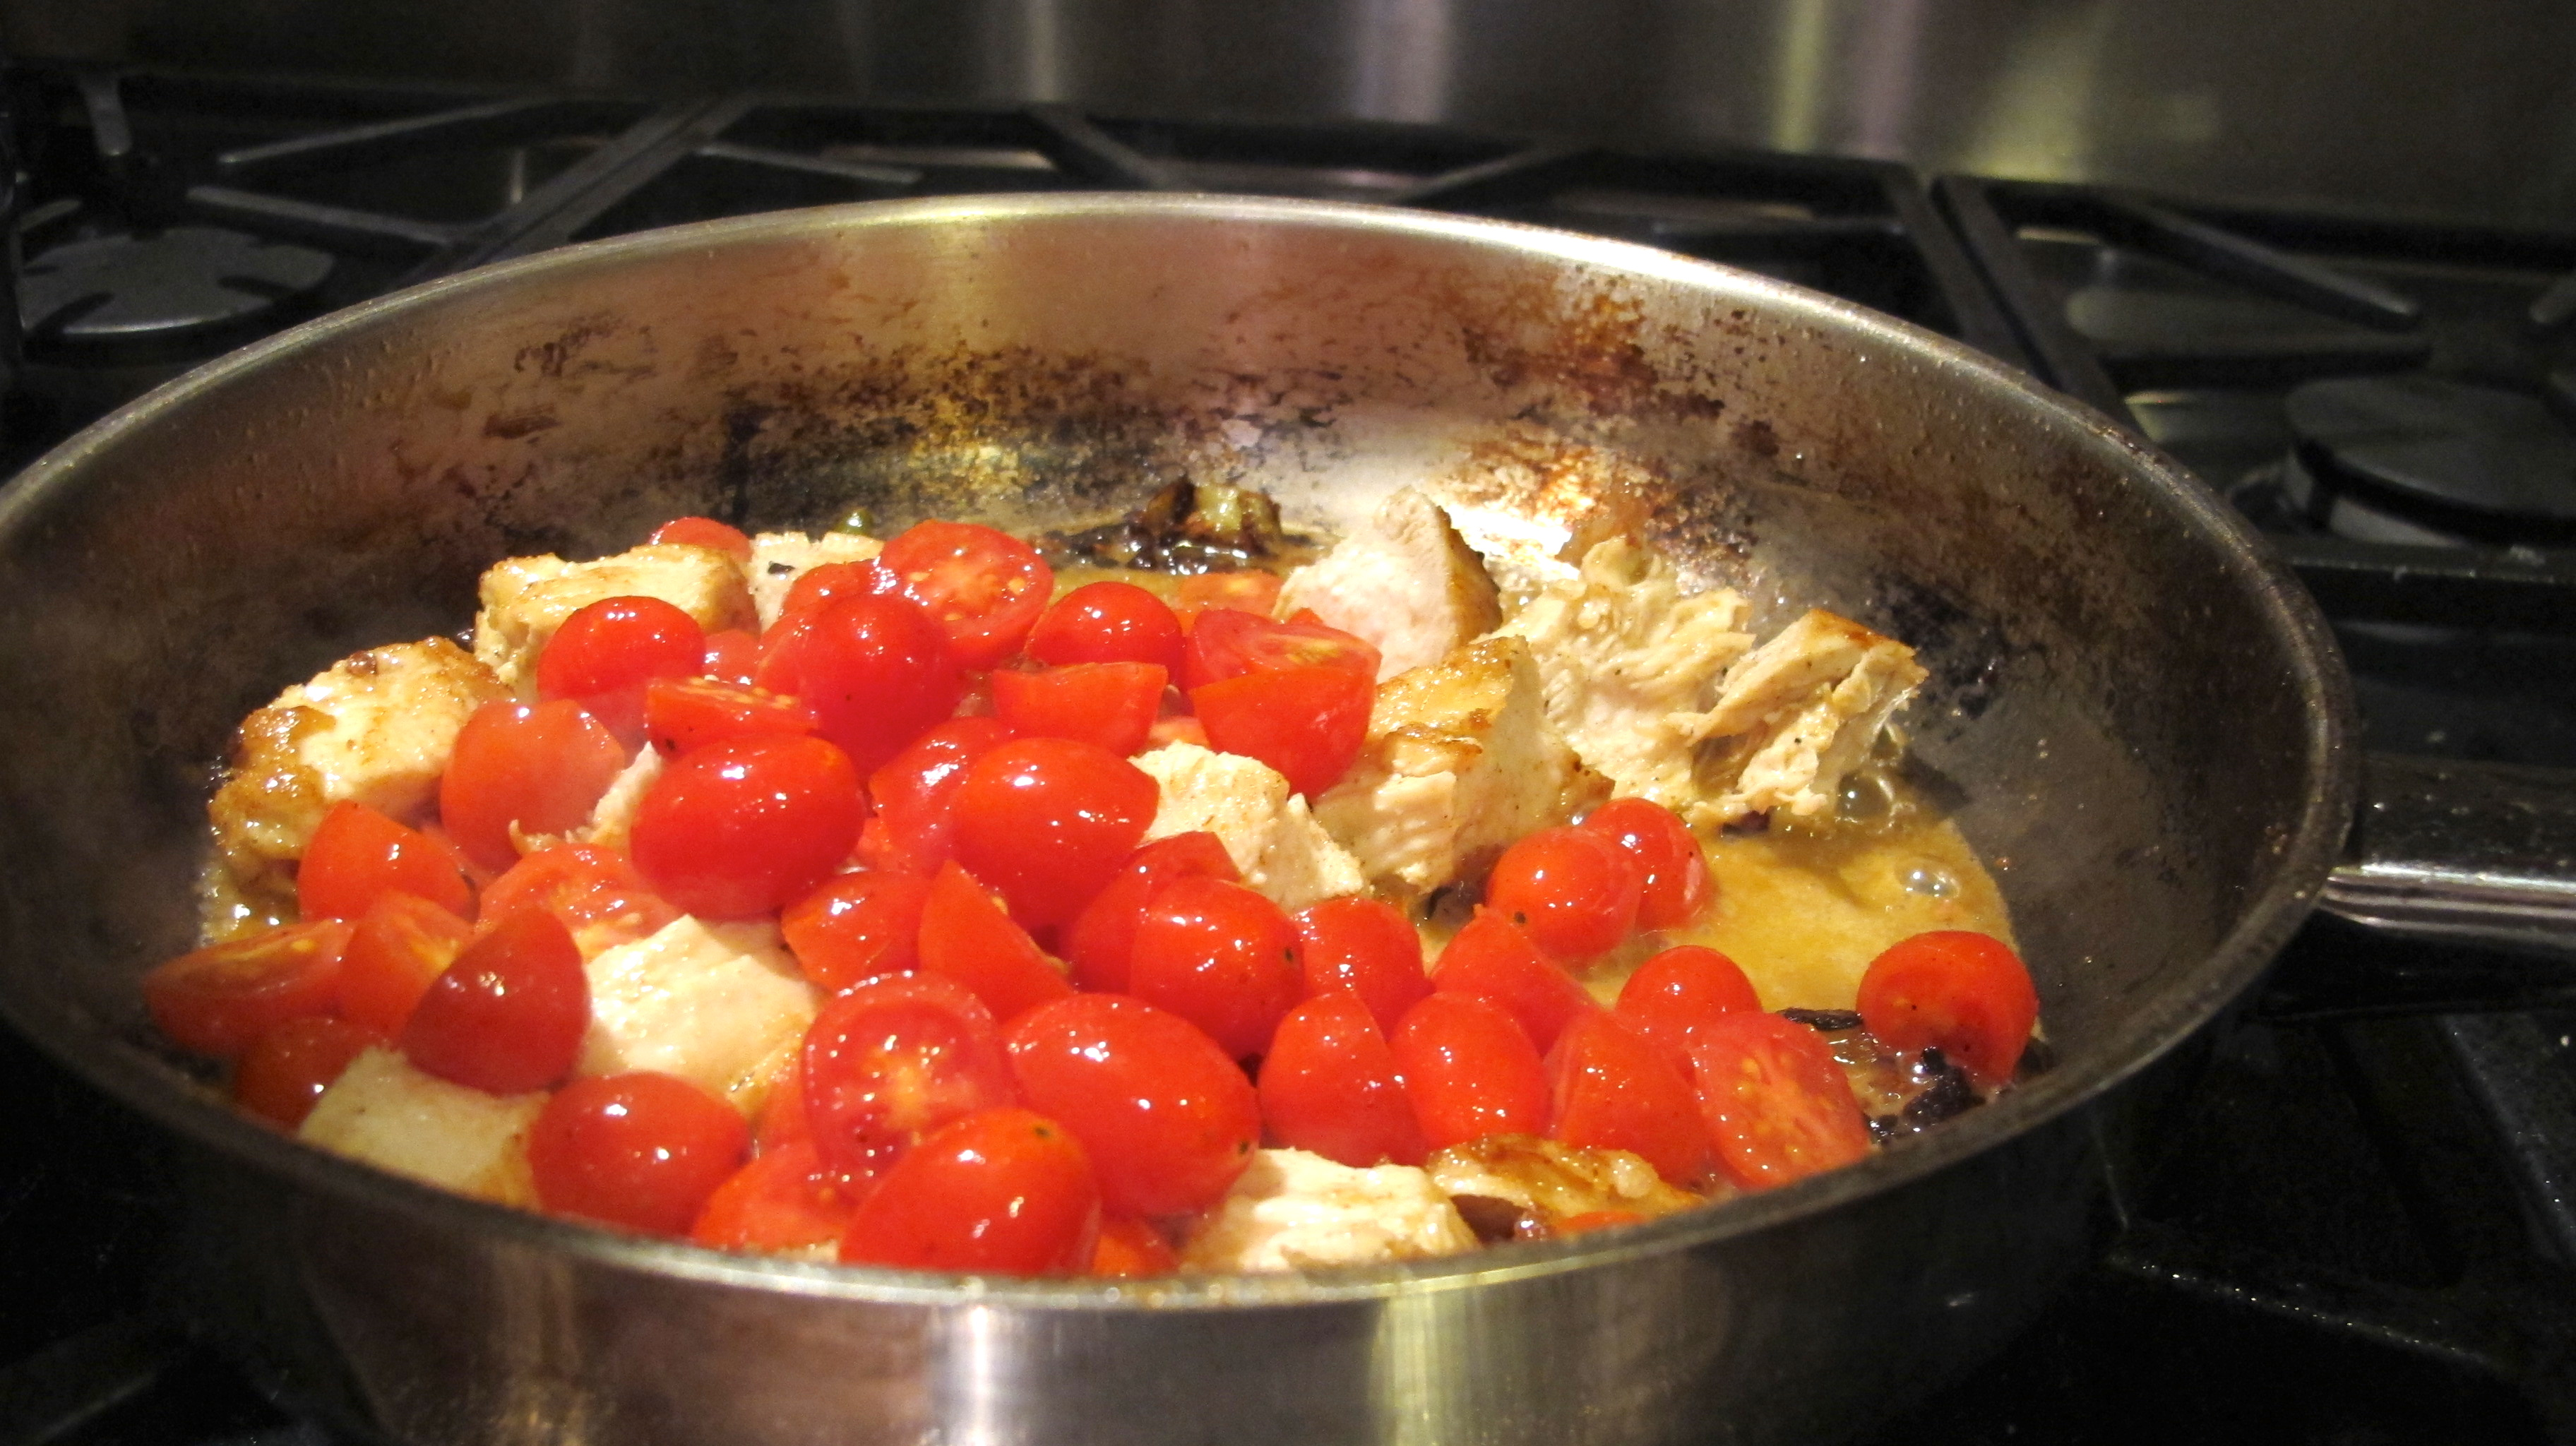 Add the cherry tomatoes.